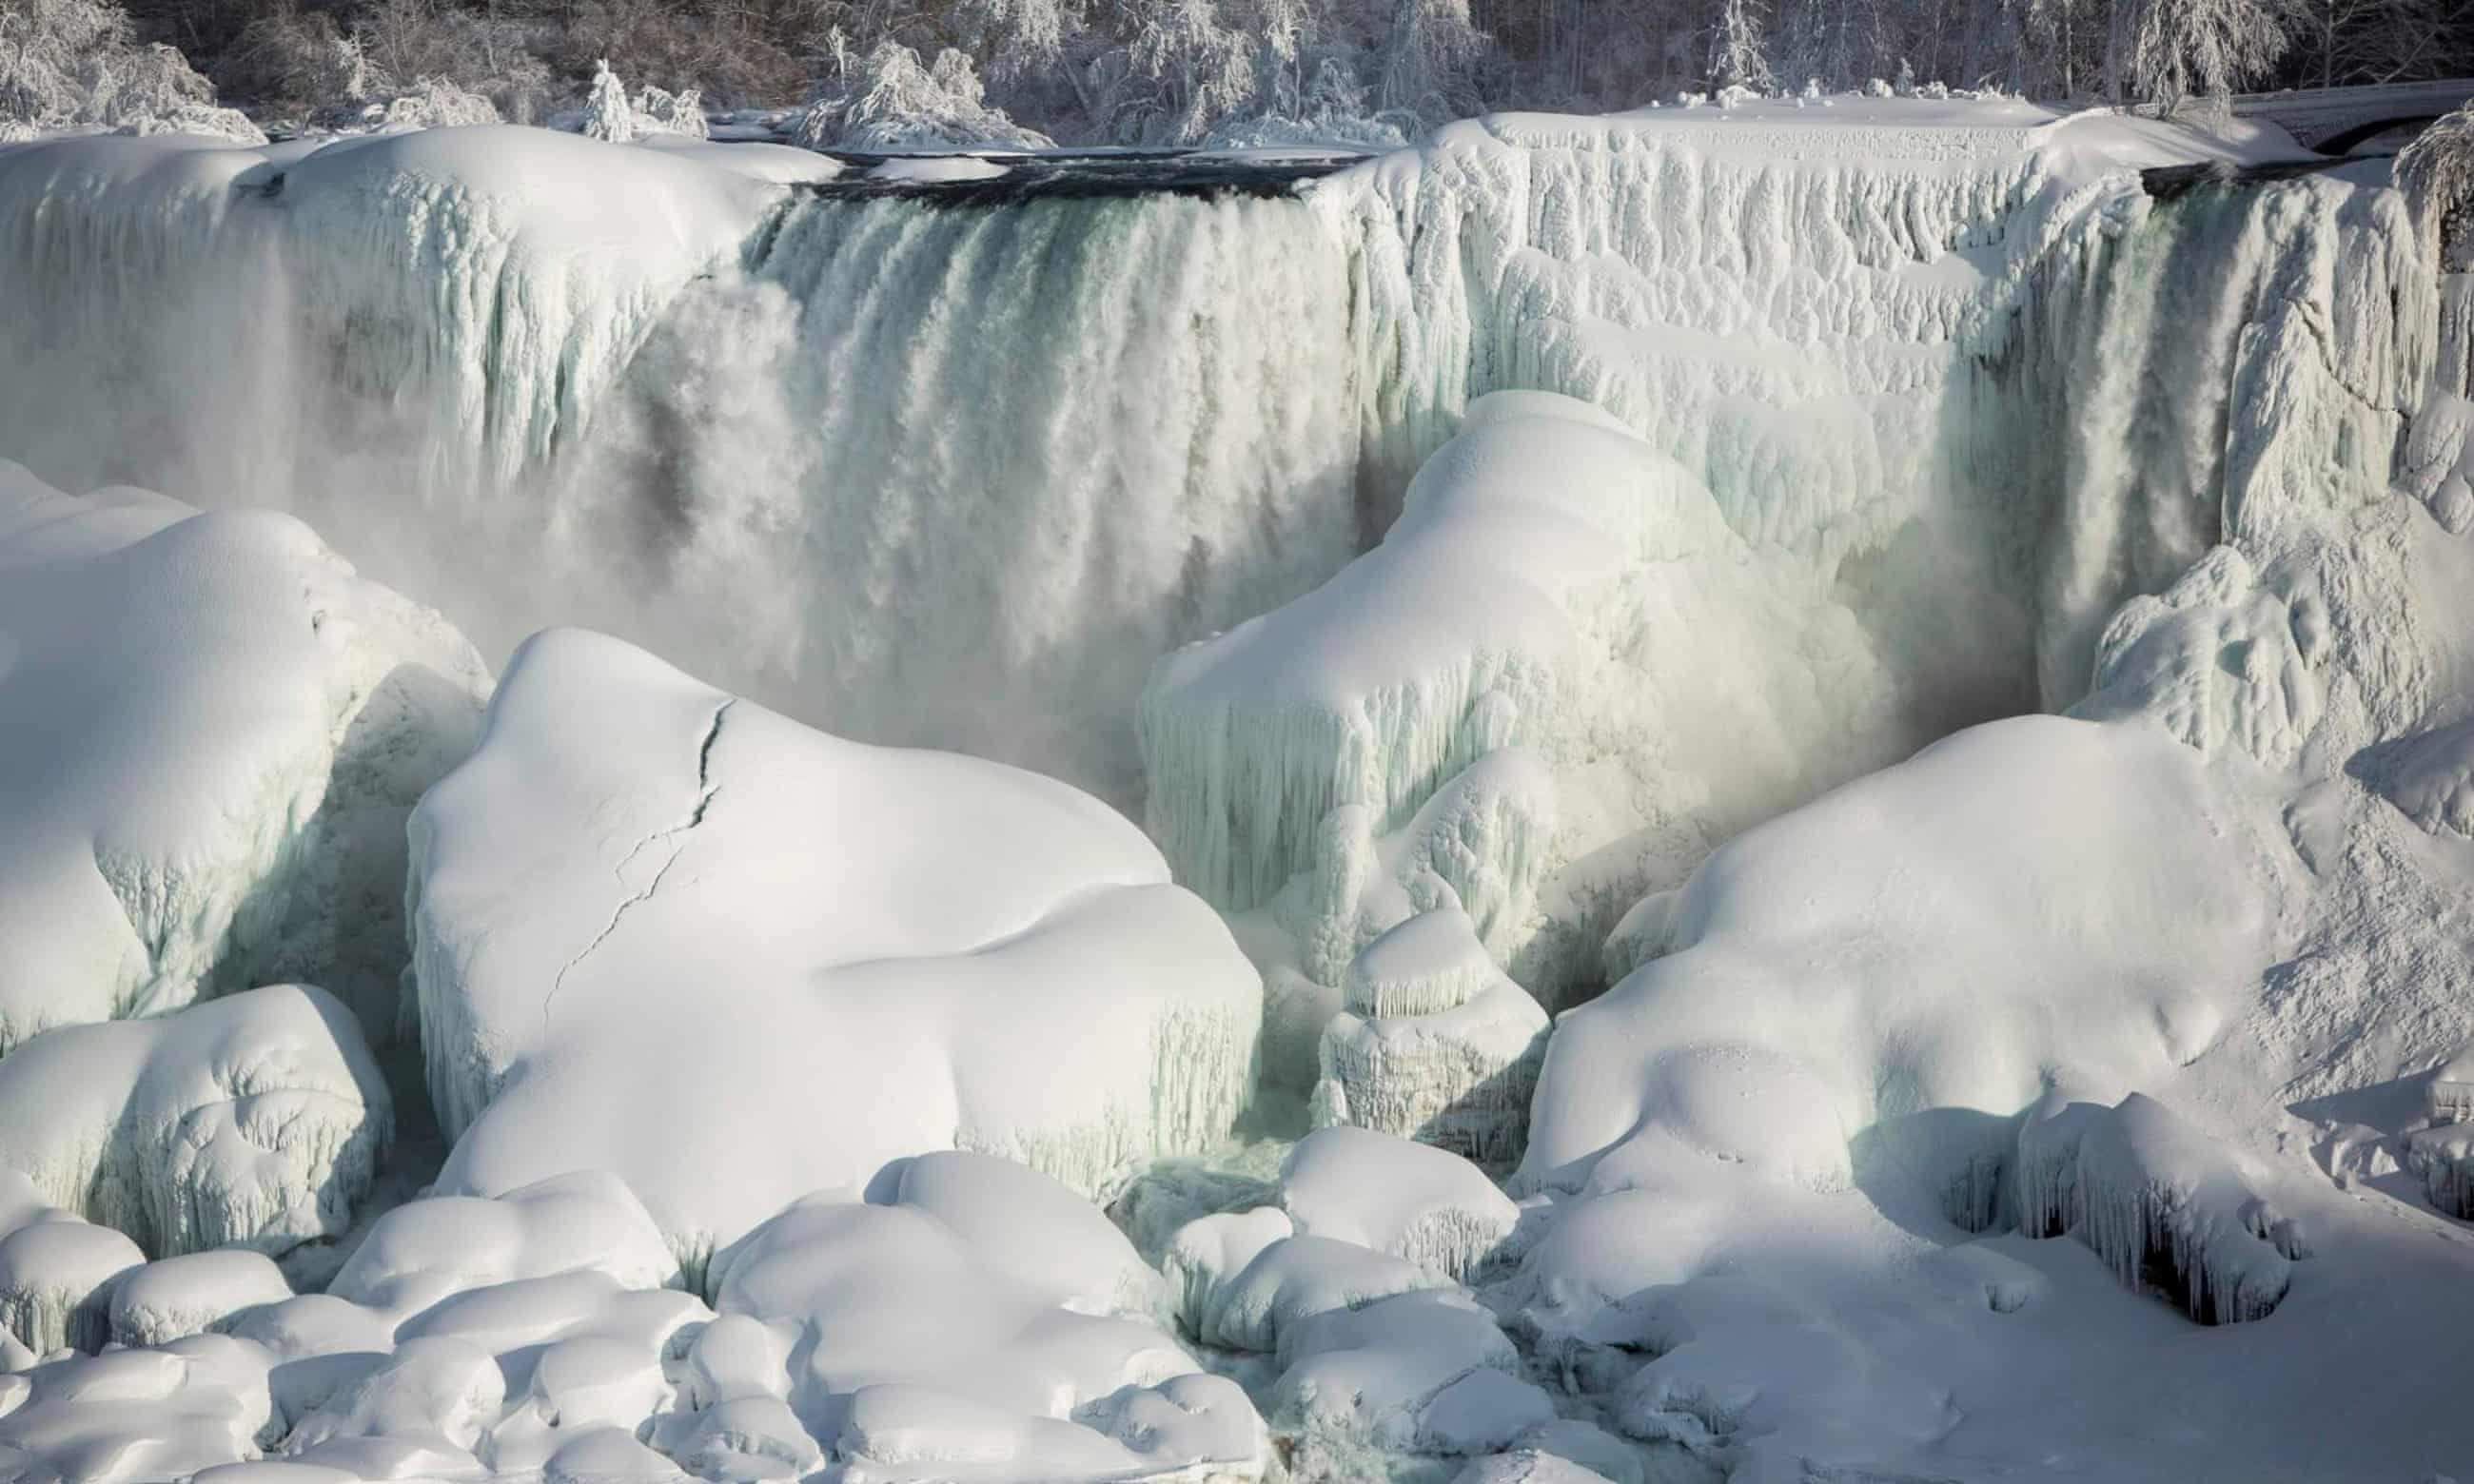 Niagara Falls freezes over as polar vortex drops temperatures – pictures